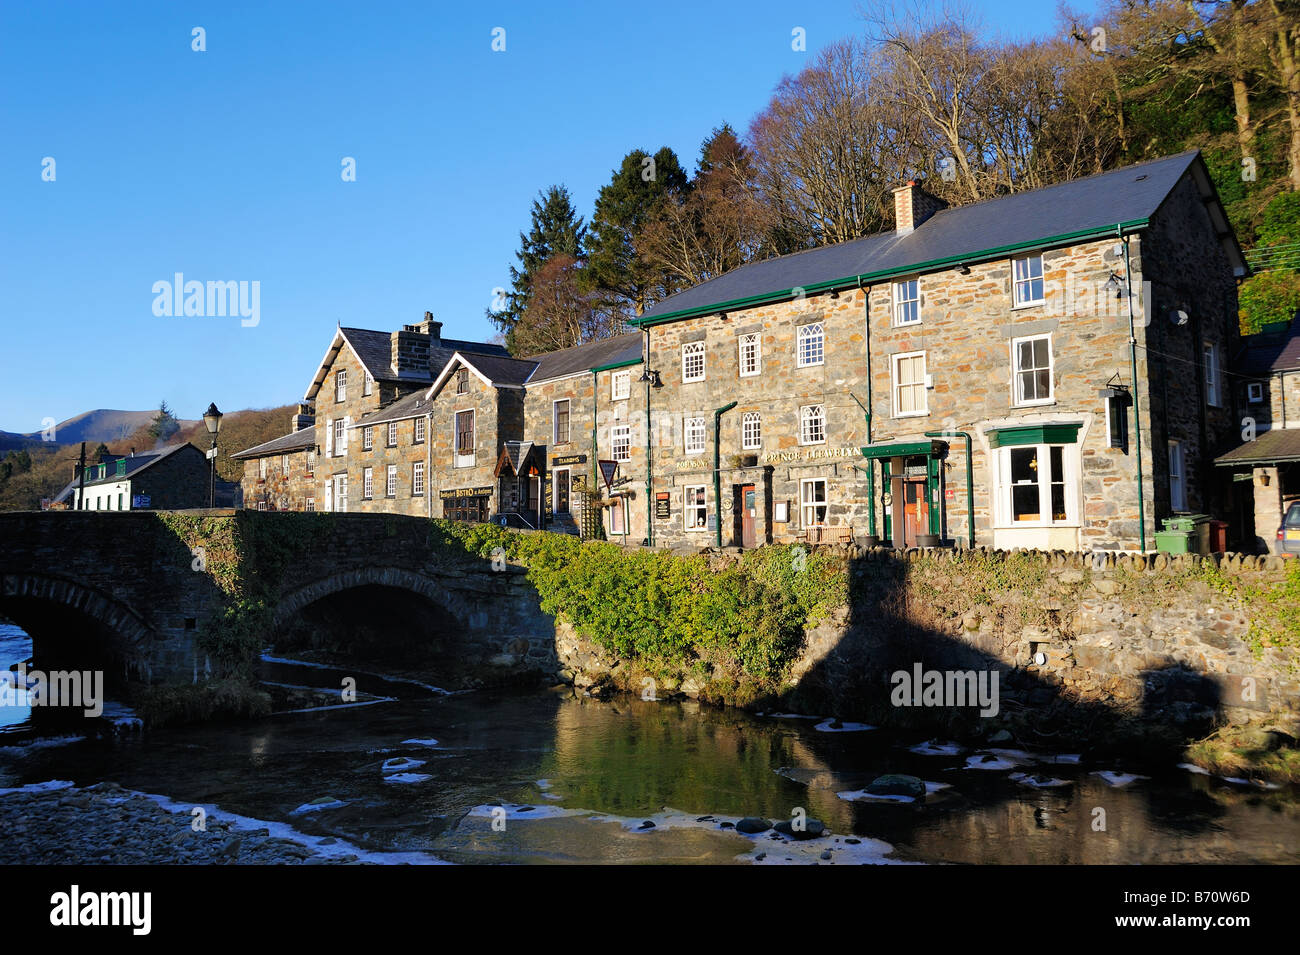 Beddgelert, the village beside the Afon Colwyn, a tourist attraction in the Snowdonia National Park. - Stock Image